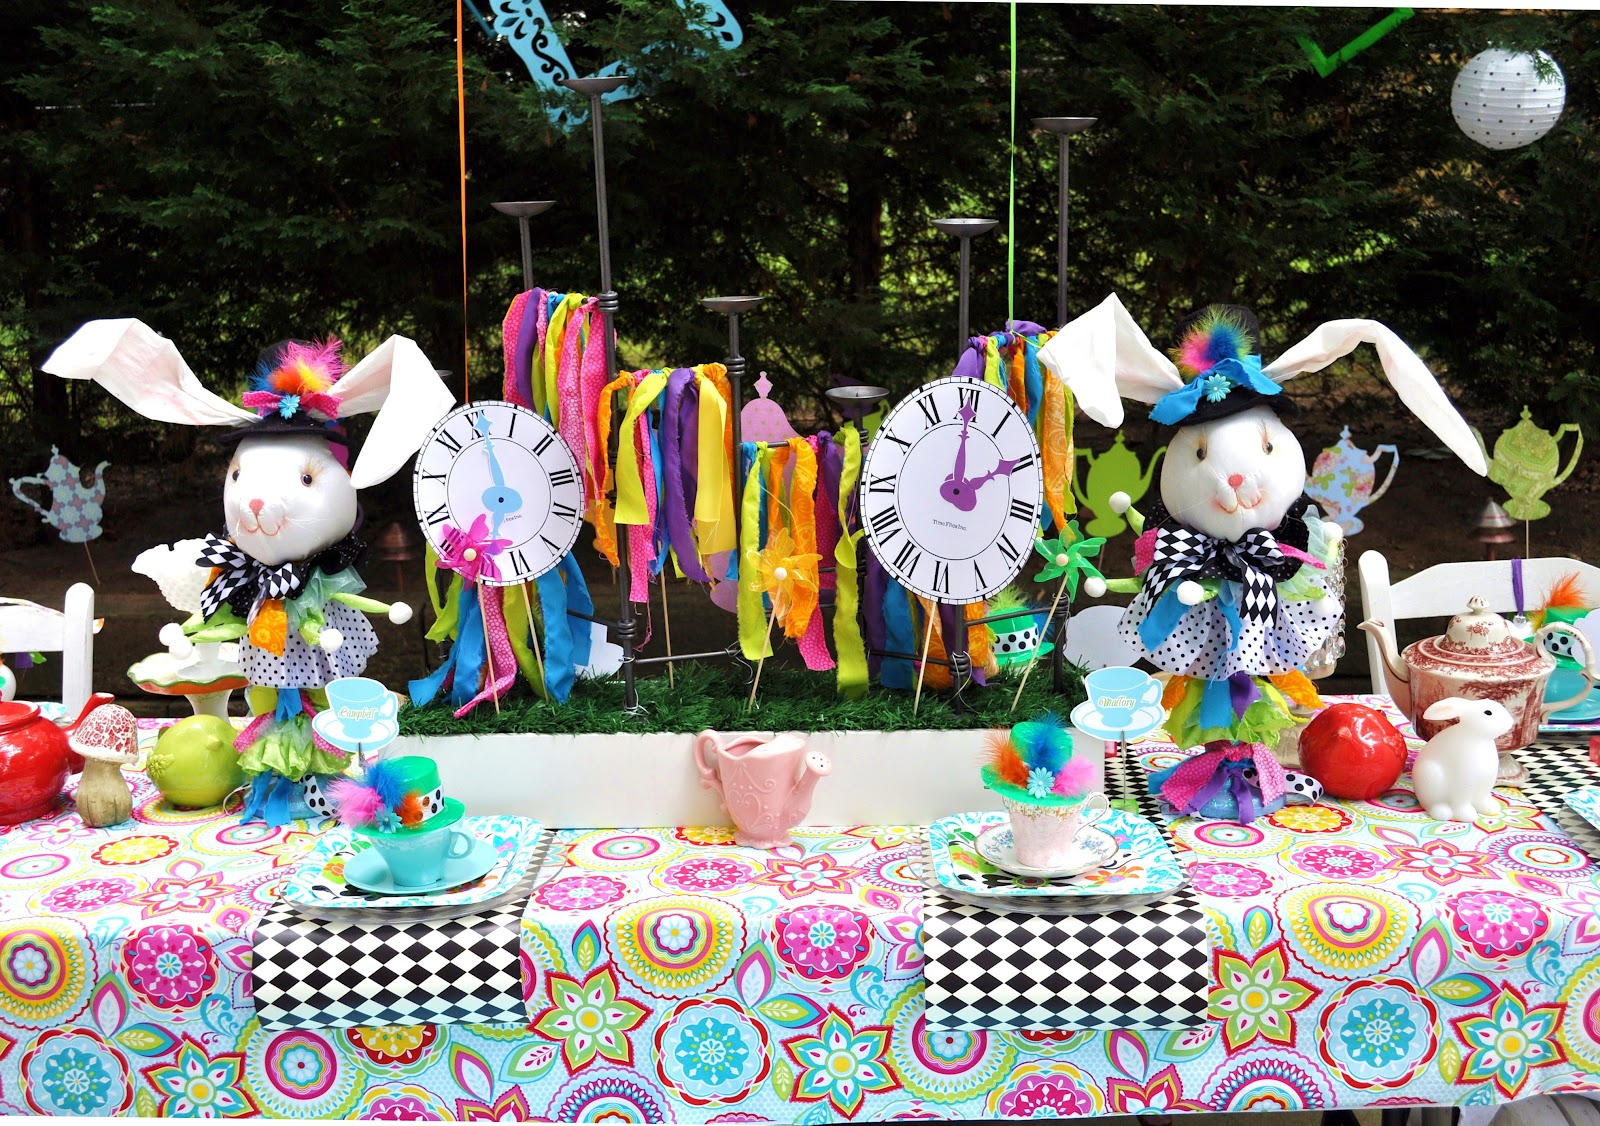 Meghily 39 s alice in wonderland party - Alice and wonderland party decorations ...